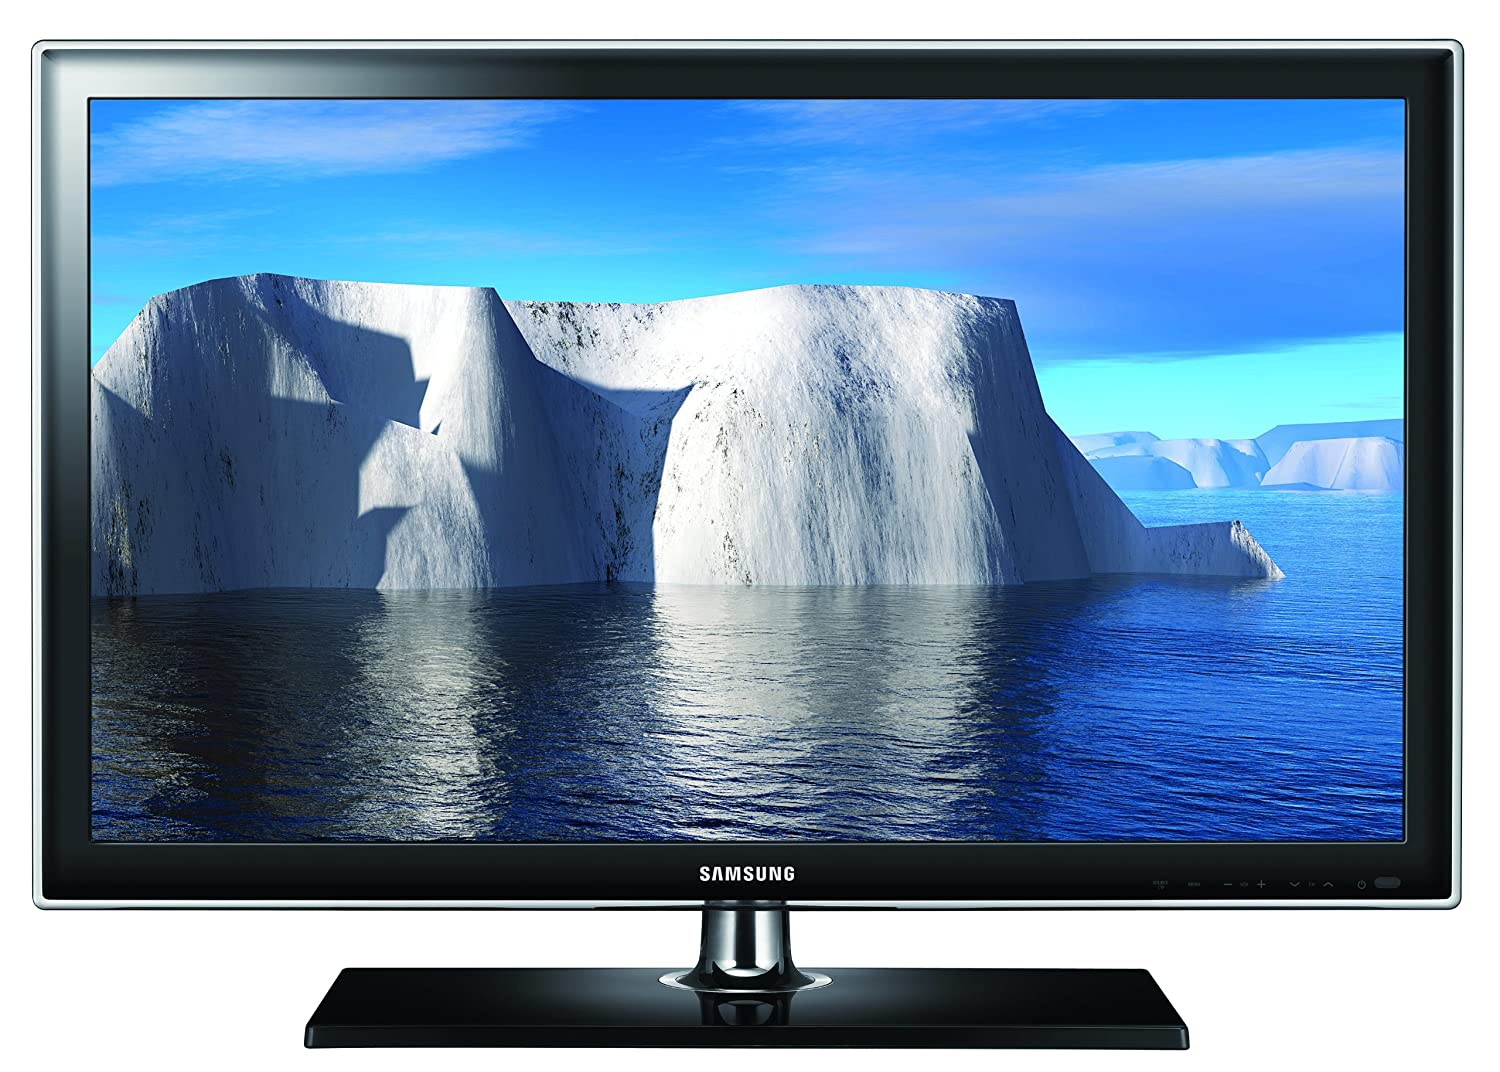 samsung tv 19. samsung ue19d4000 19-inch widescreen hd ready led television with freeview: amazon.co.uk: tv tv 19